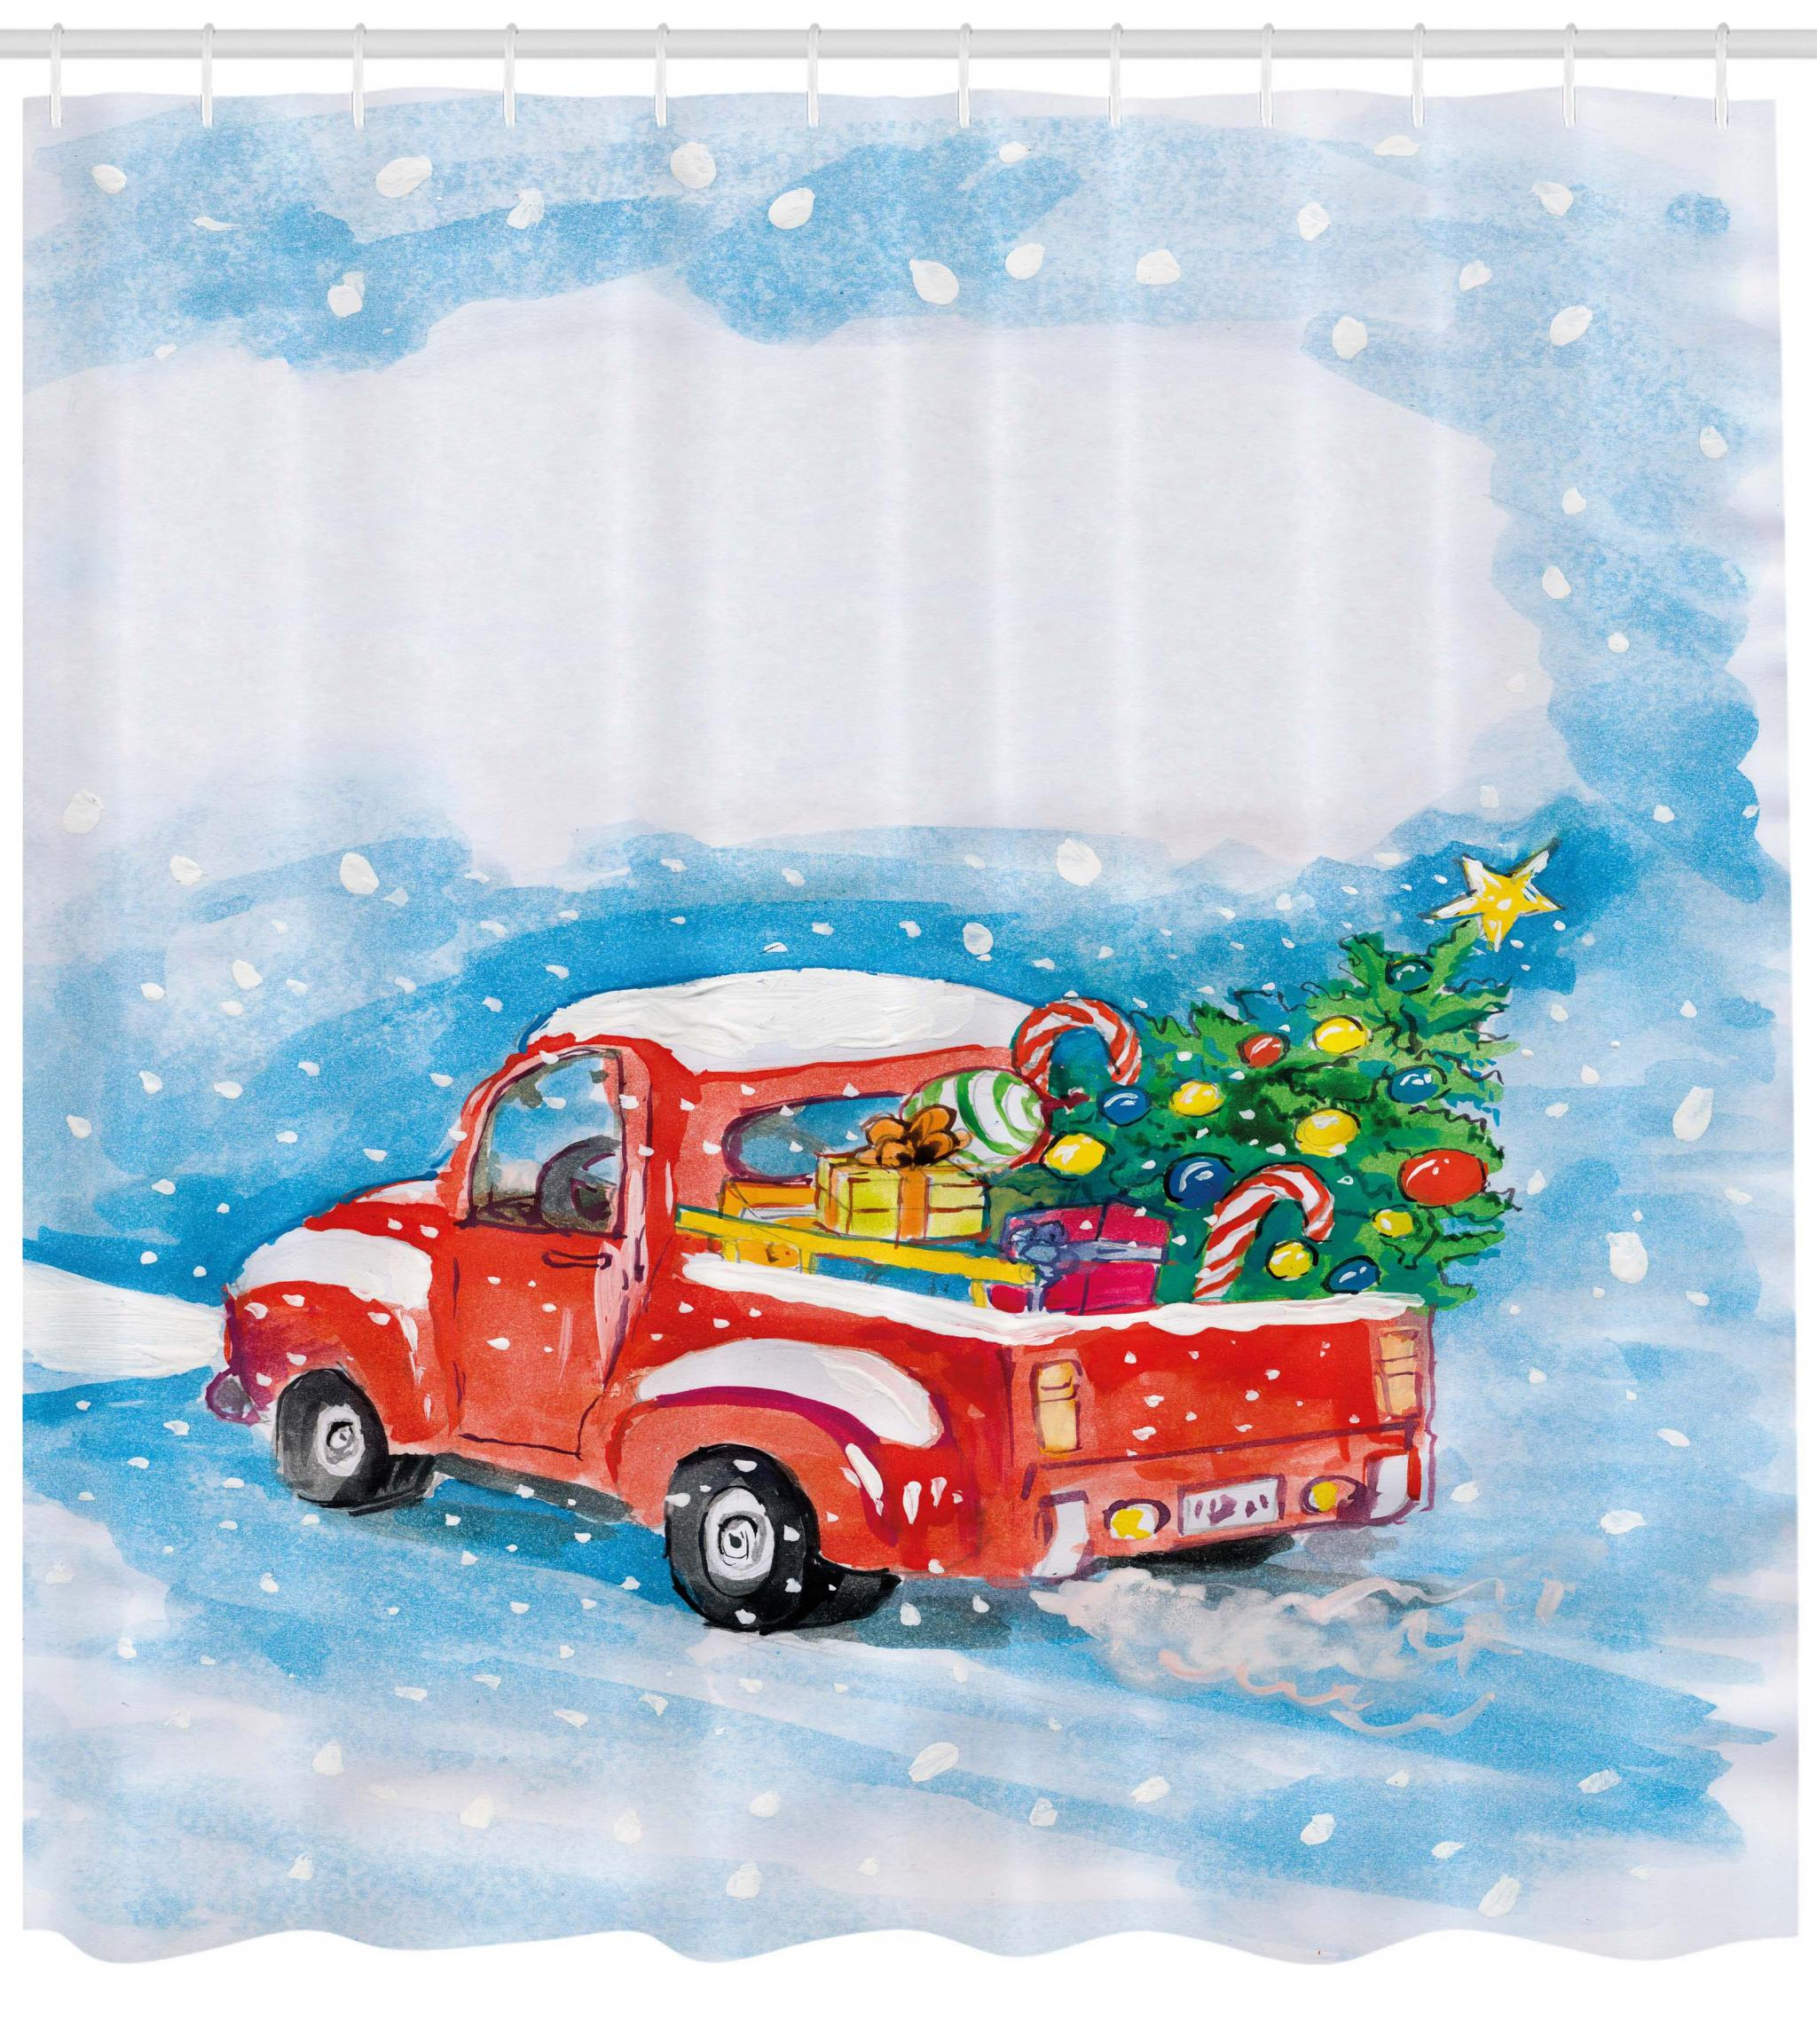 Christmas Shower Curtain, Vintage Red Truck In Snowy